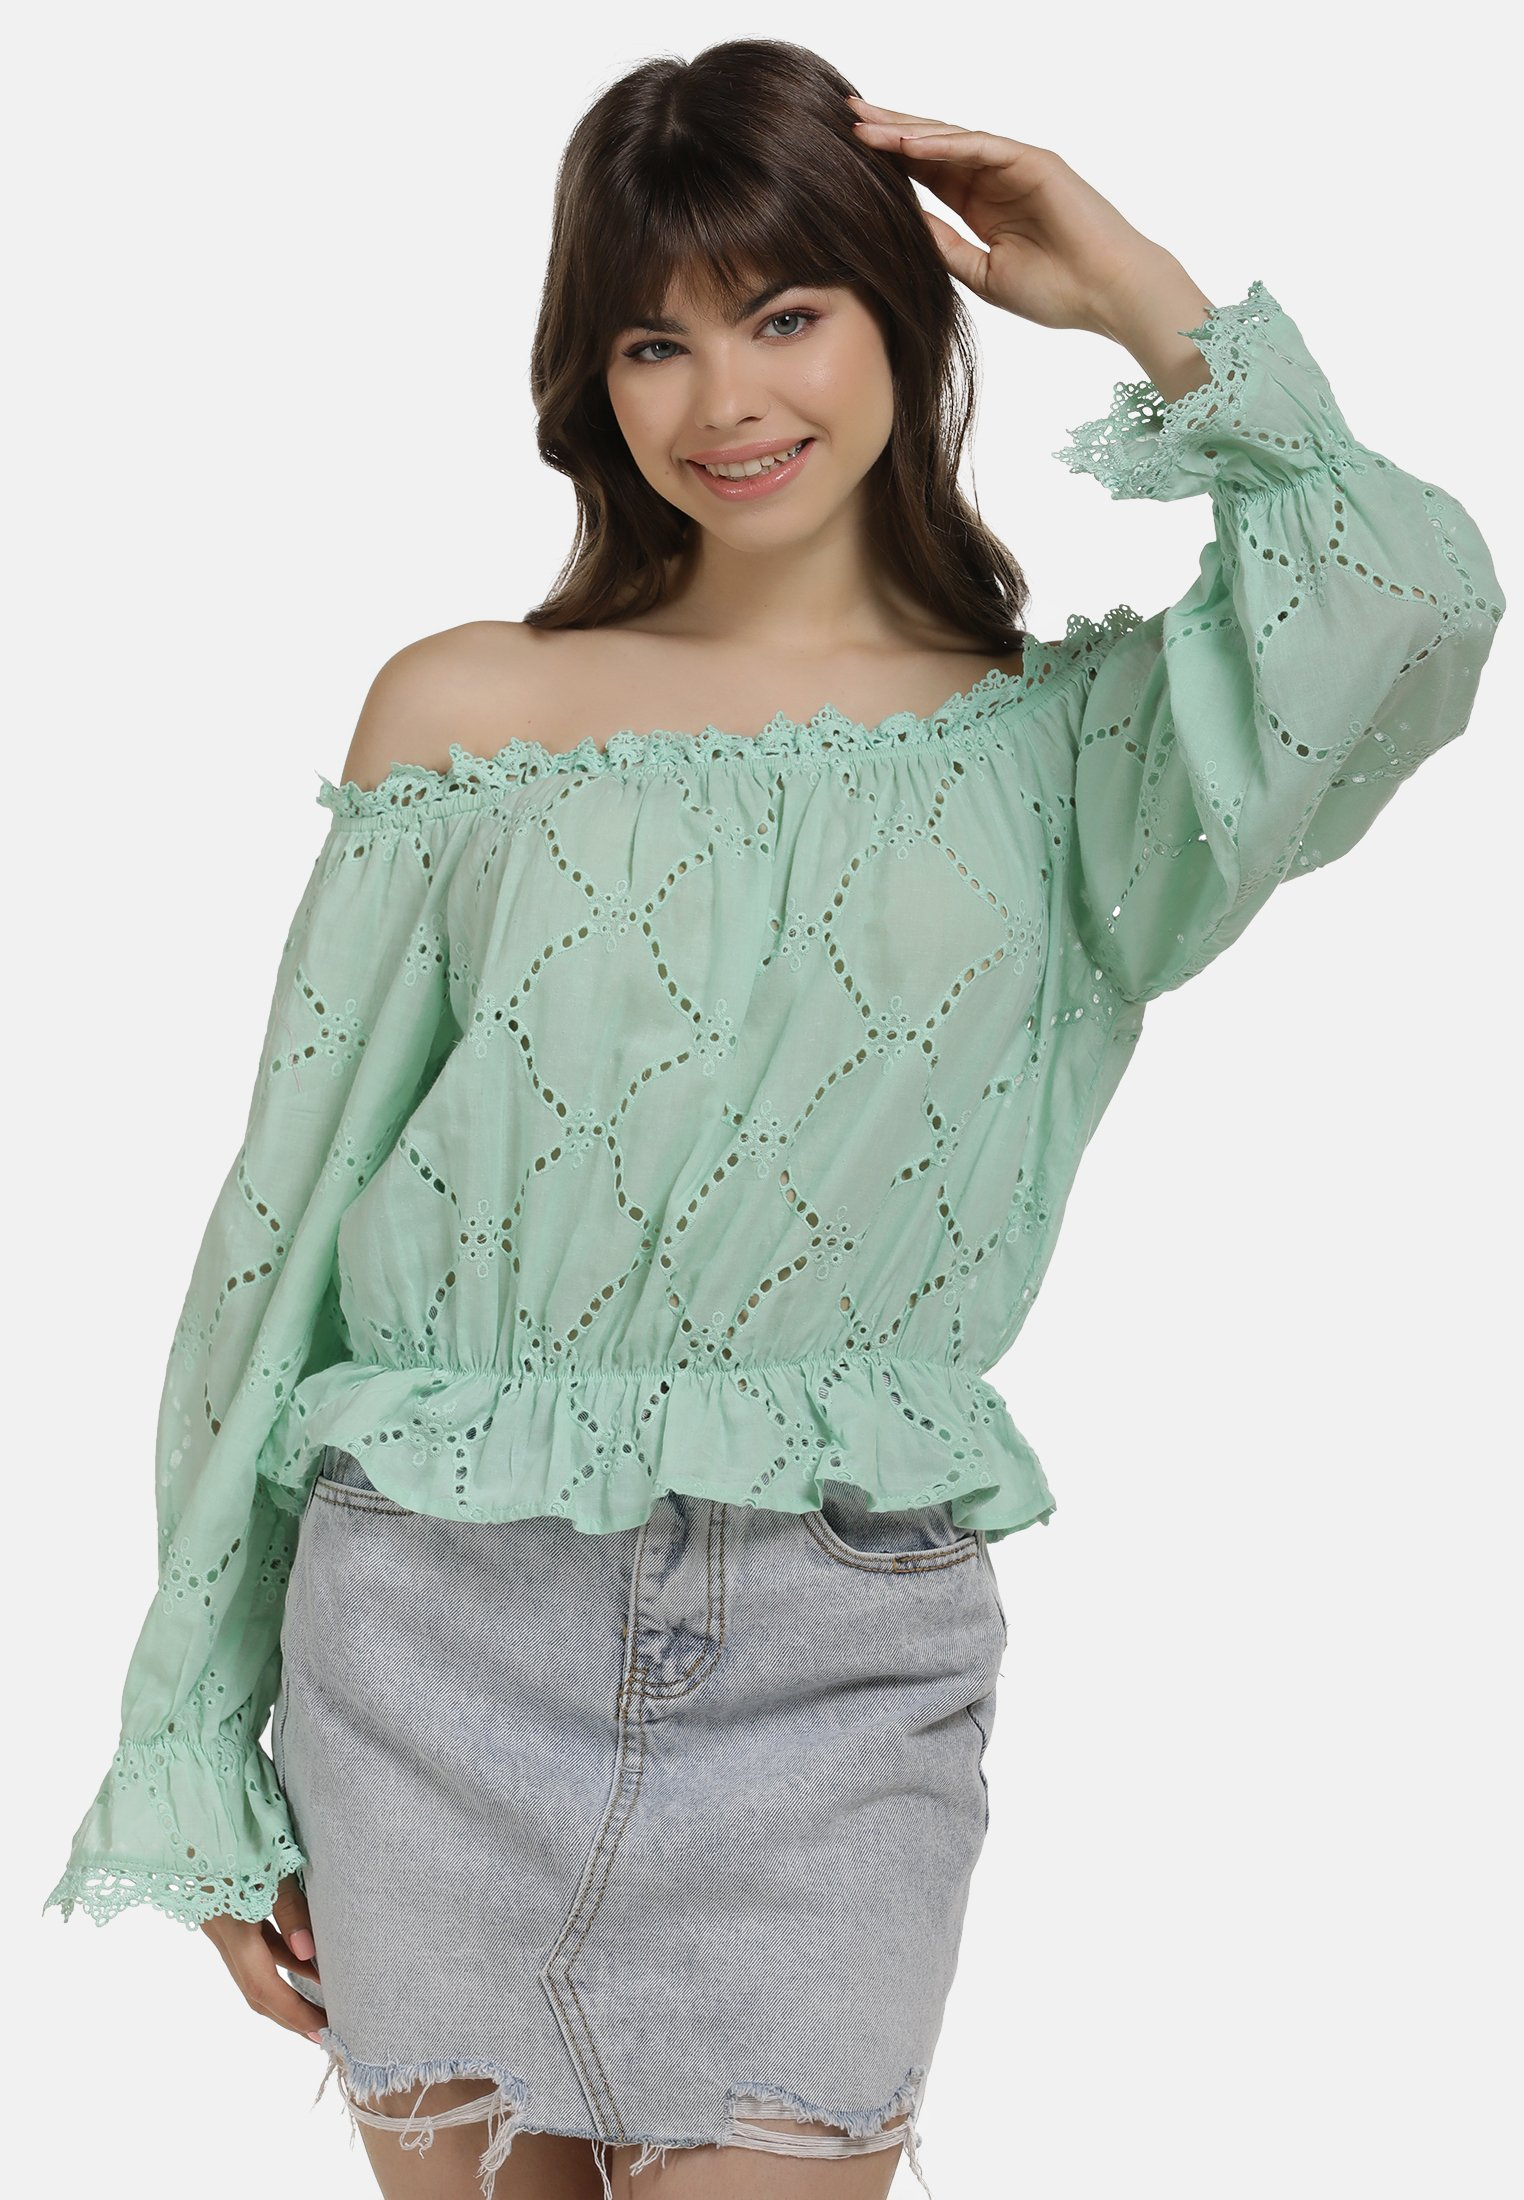 Latest Women's Clothing myMo BLUSE Blouse green GBAeUuOV8